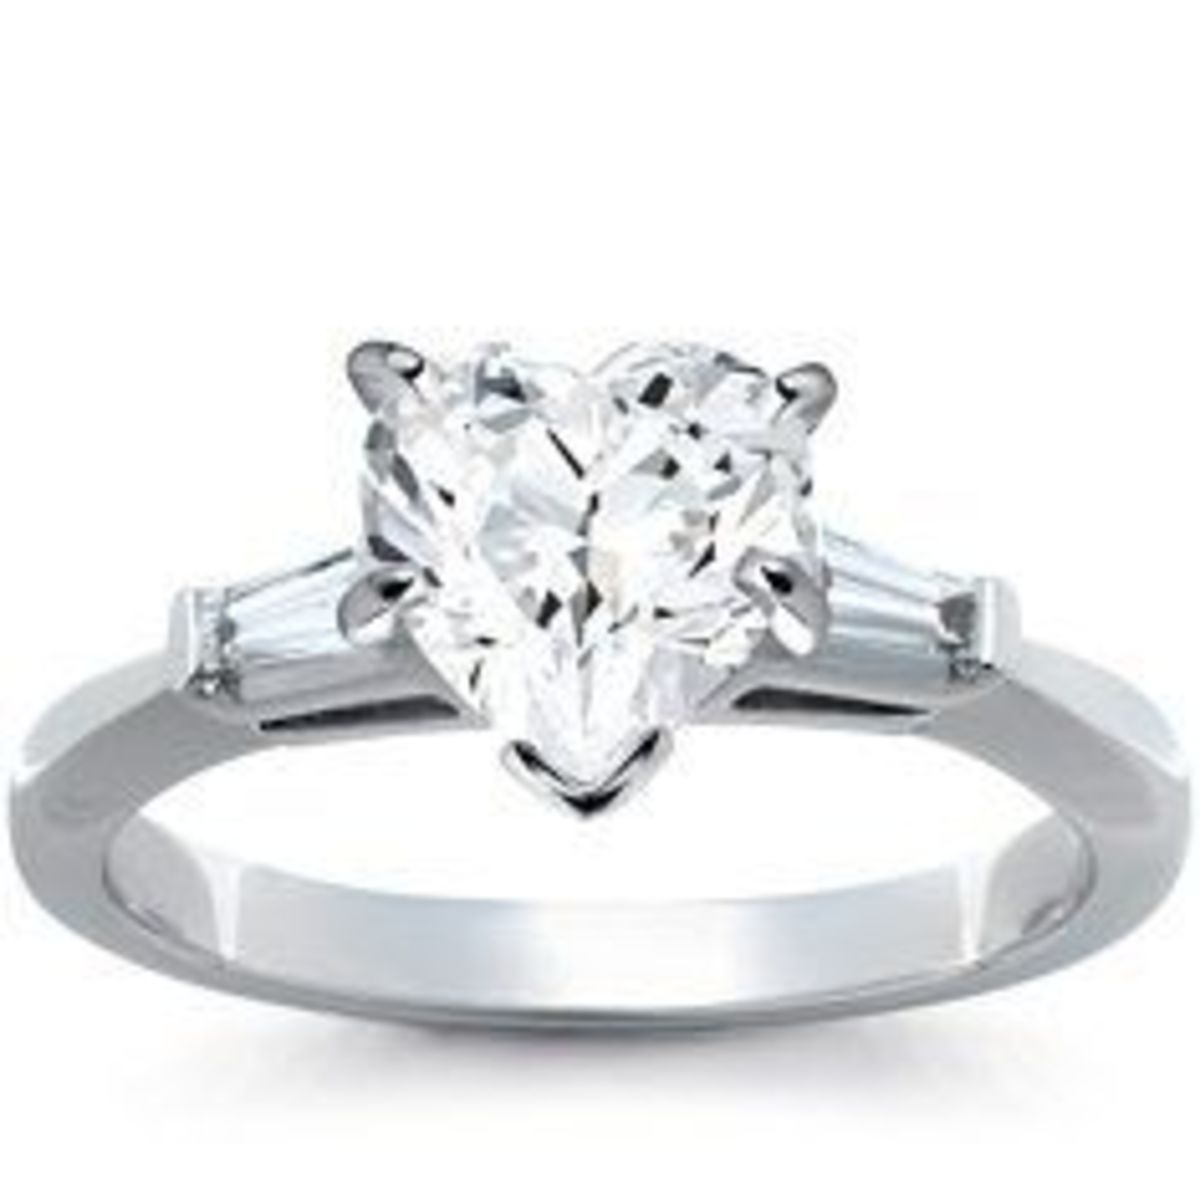 James Allen heart shaped diamond in tapered baguette setting